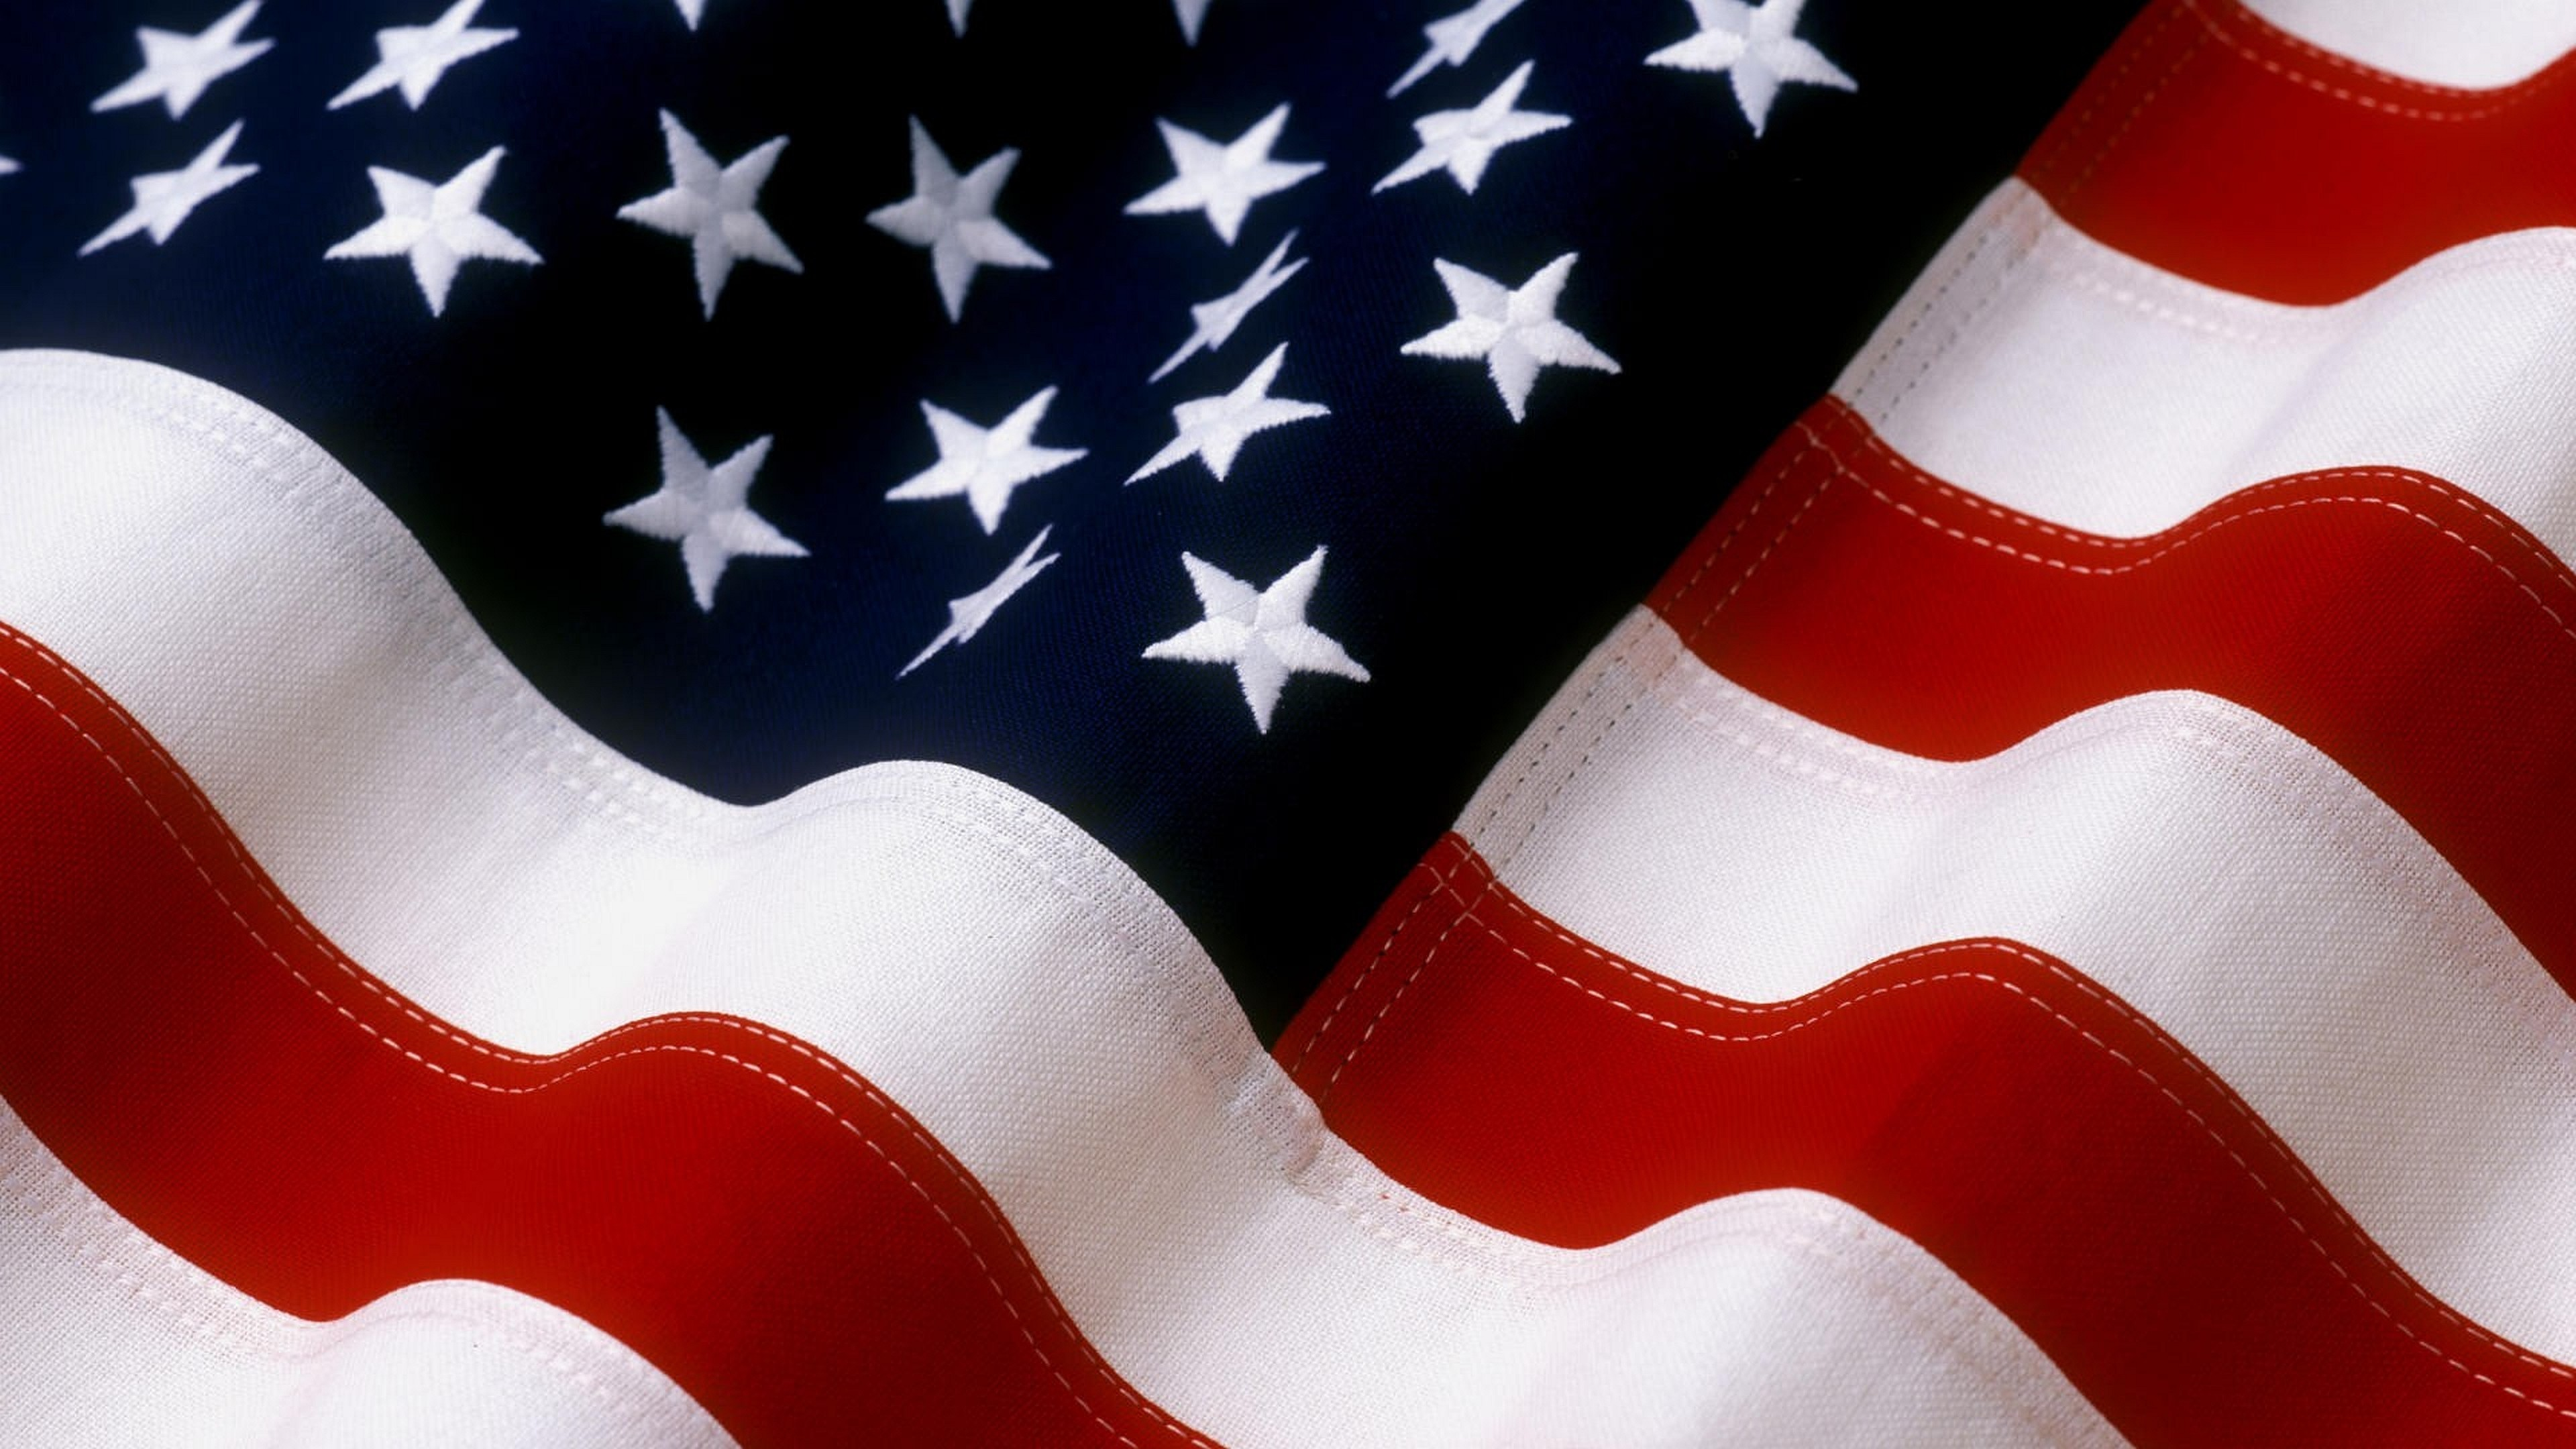 3840x2160 American Flag Backgrounds (75 Wallpapers)